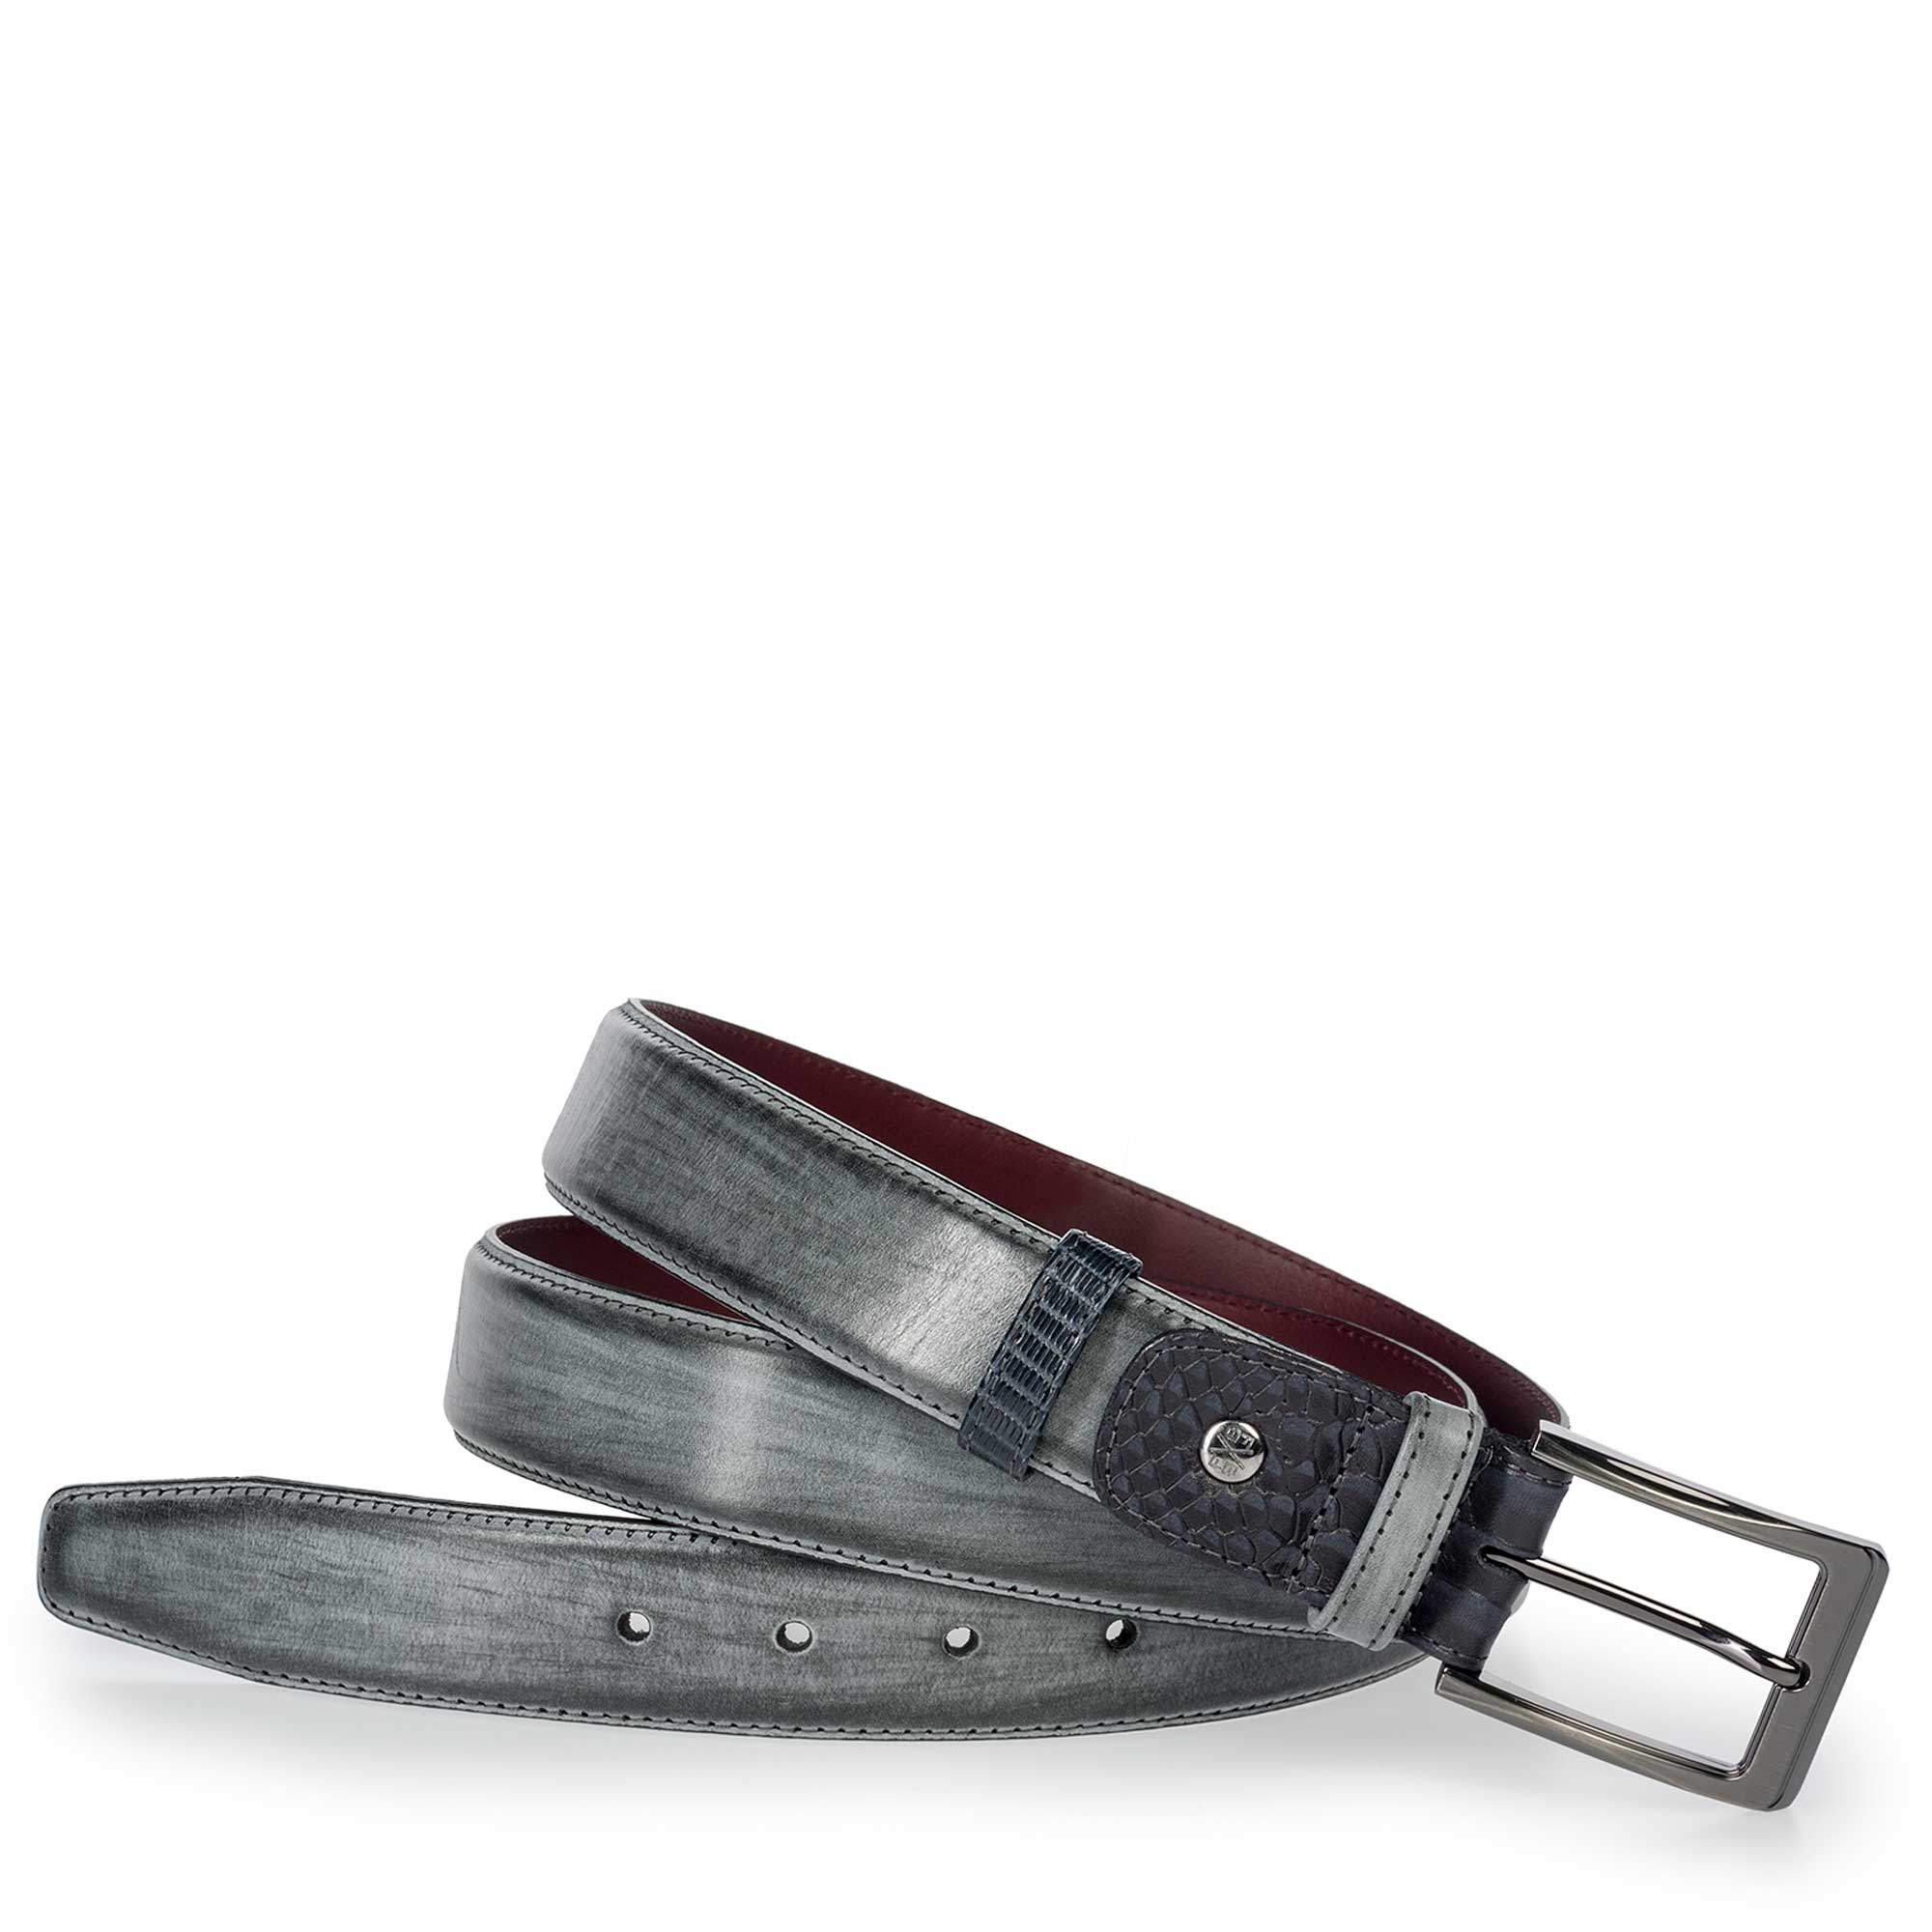 75160/01 - Floris van Bommel anthracite grey leather men's belt